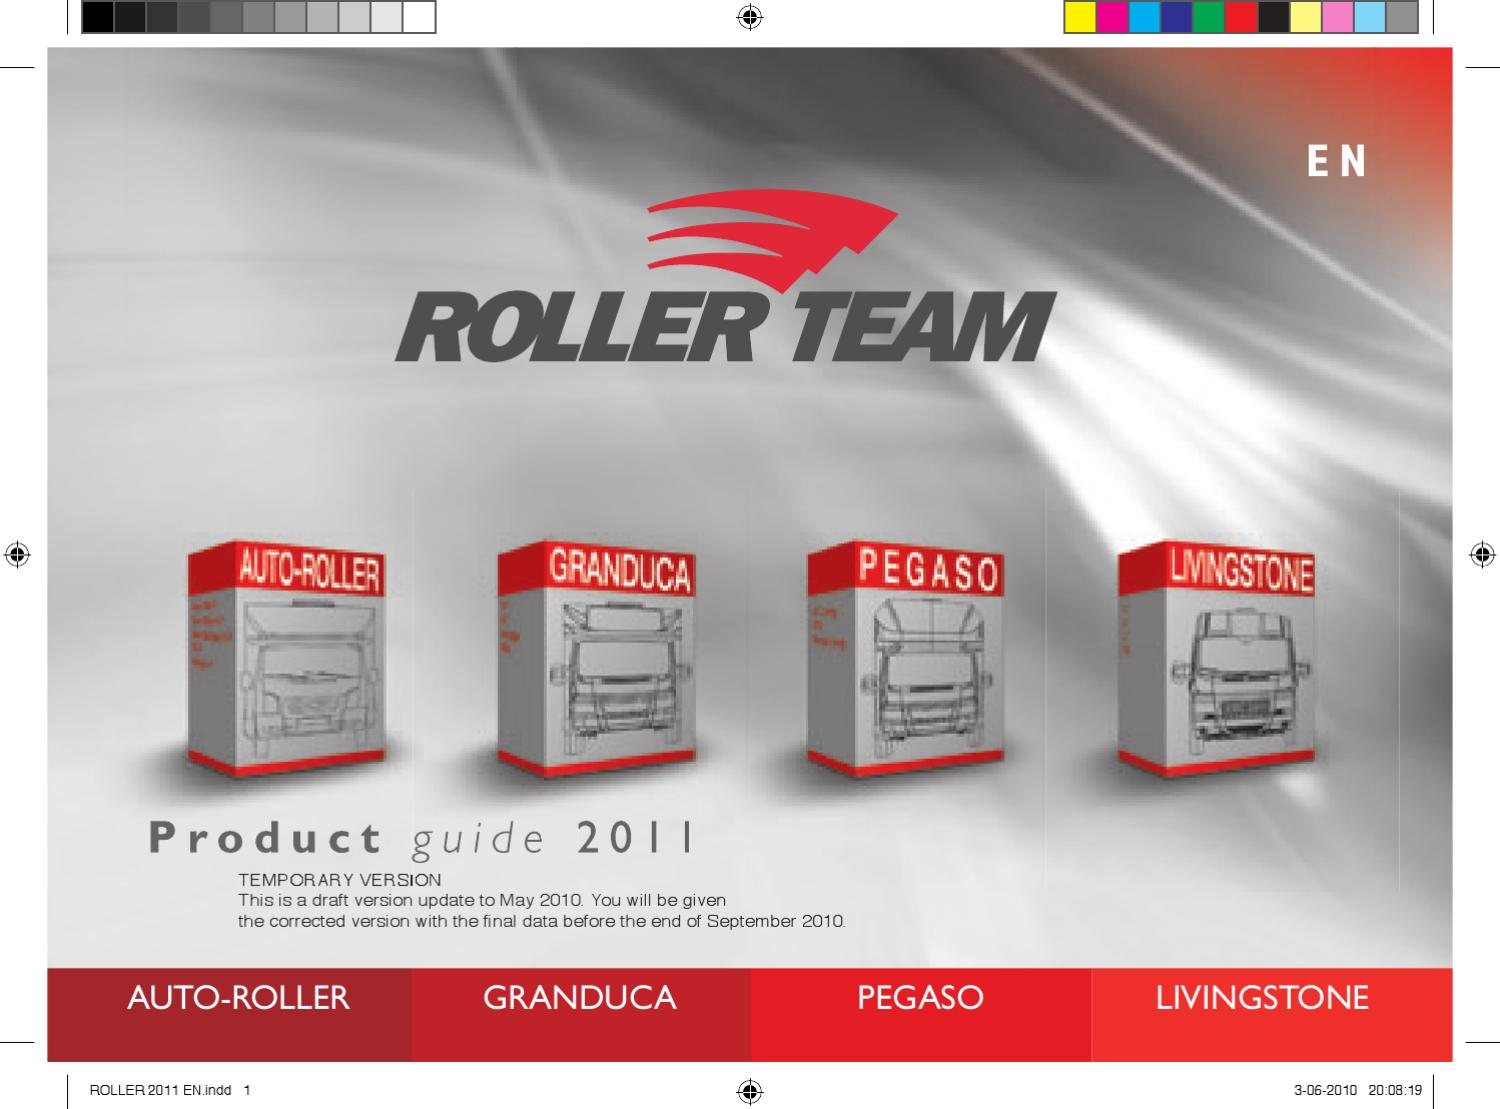 Cucina Con Finestra Orizzontale roller team product guide 2011 by tali rezun - issuu